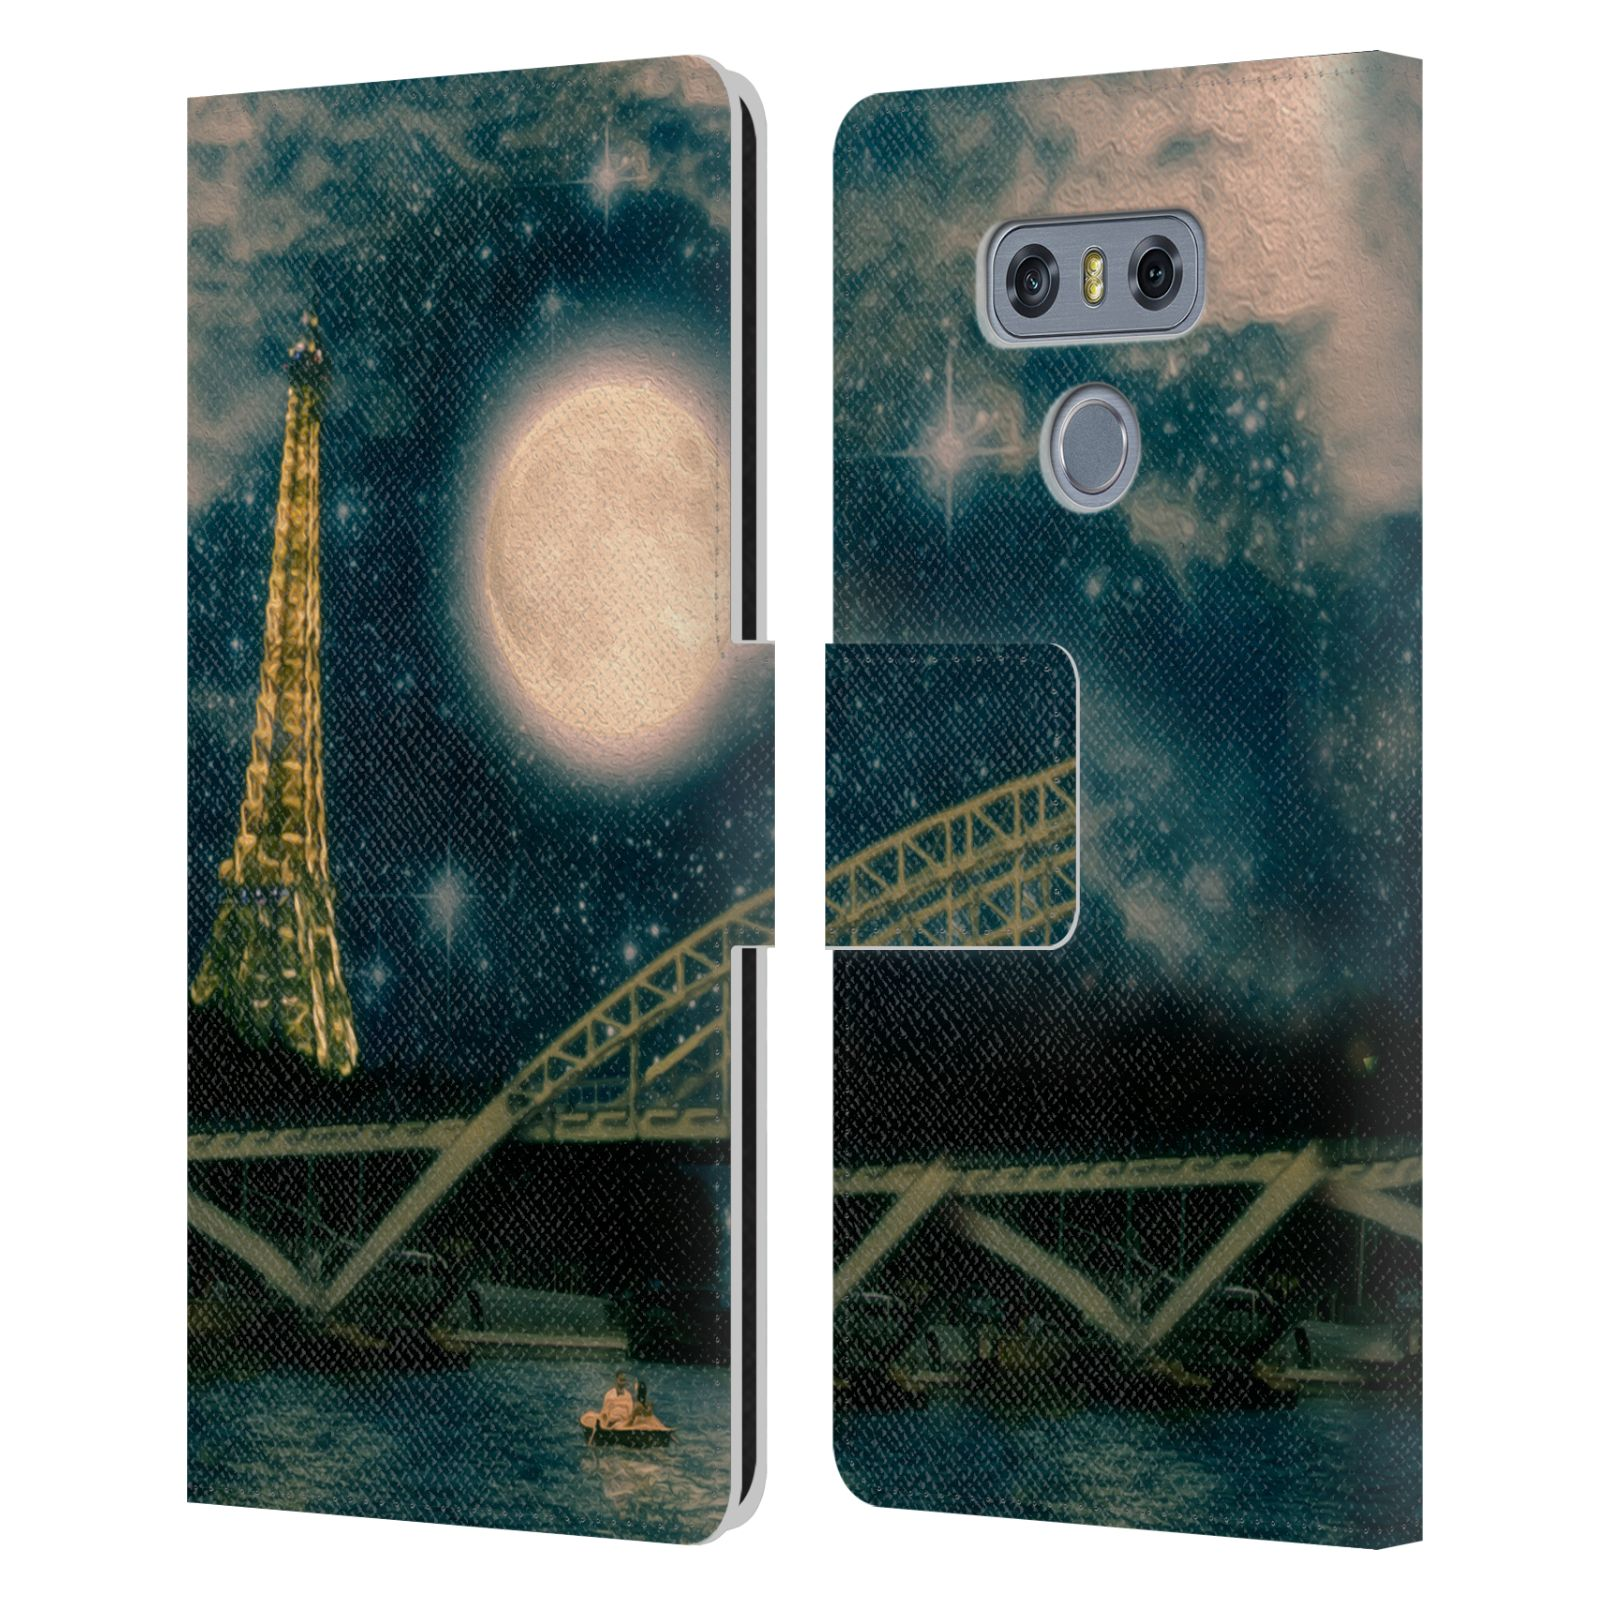 OFFICIAL-PAULA-BELLE-FLORES-MOON-LEATHER-BOOK-WALLET-CASE-COVER-FOR-LG-PHONES-1